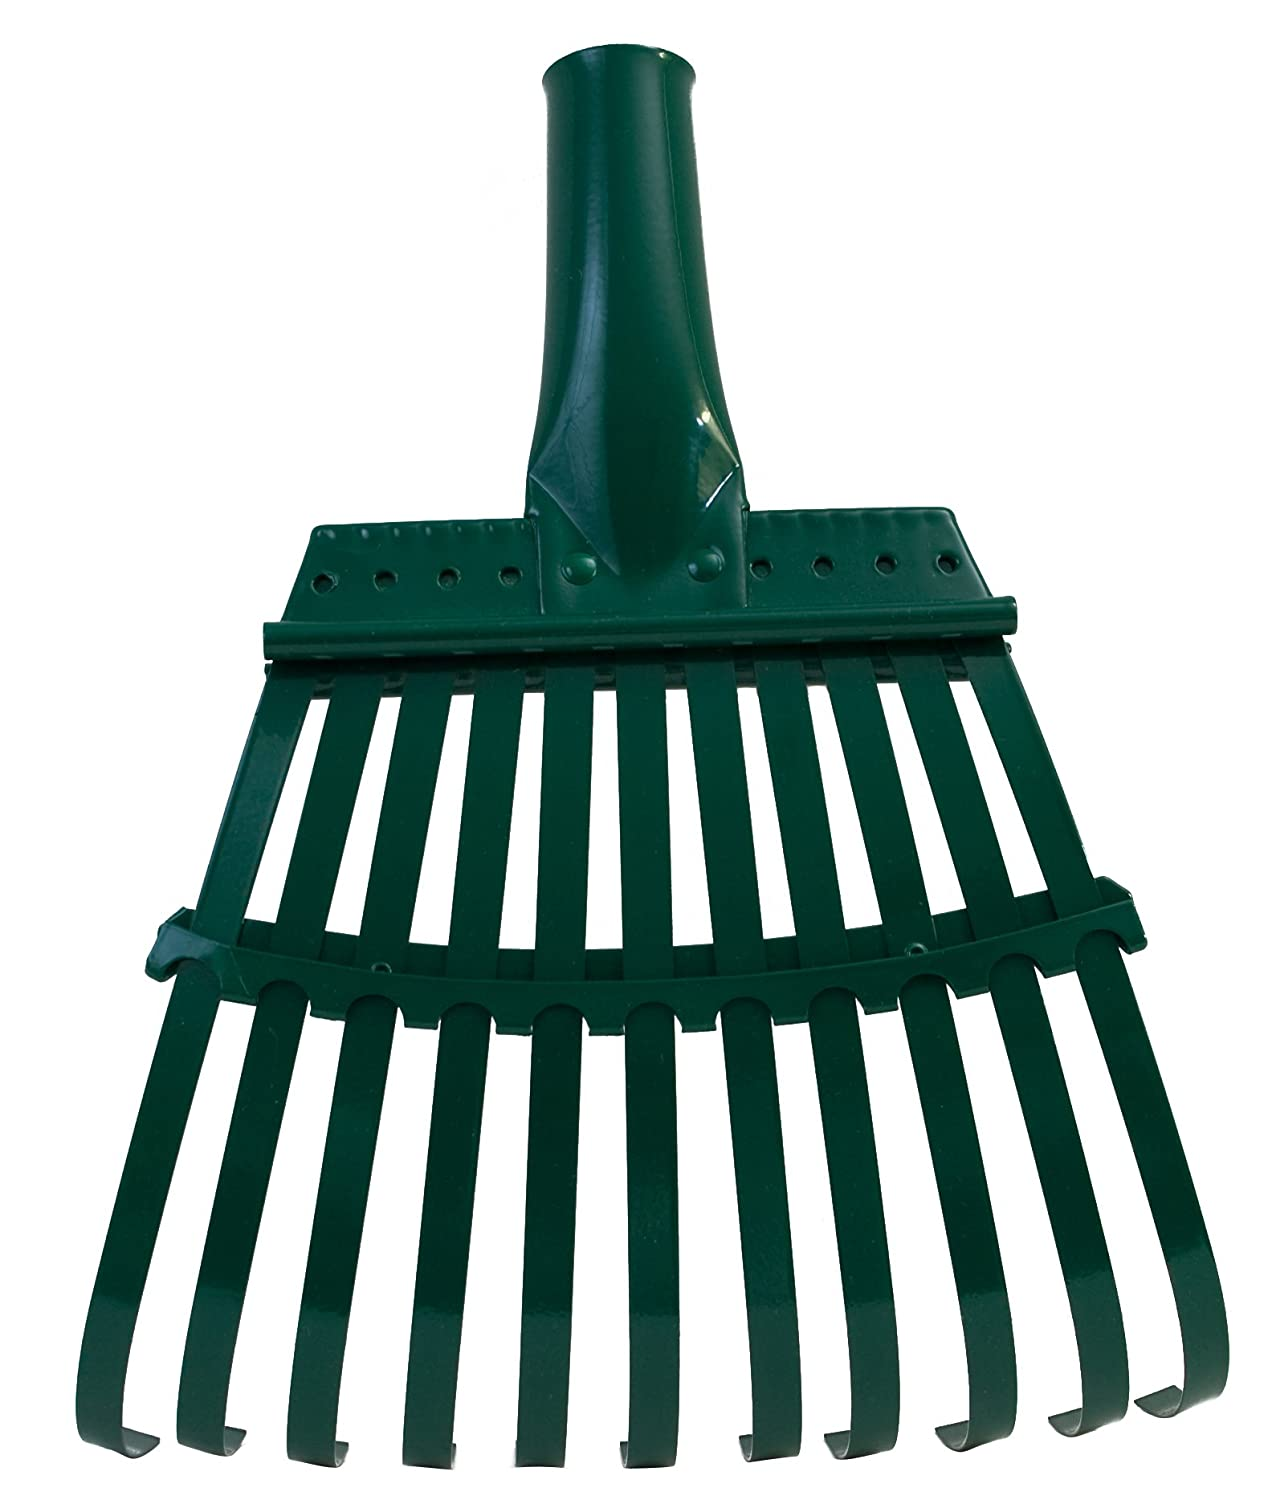 Flexrake 3F Shrub Rake Head Only